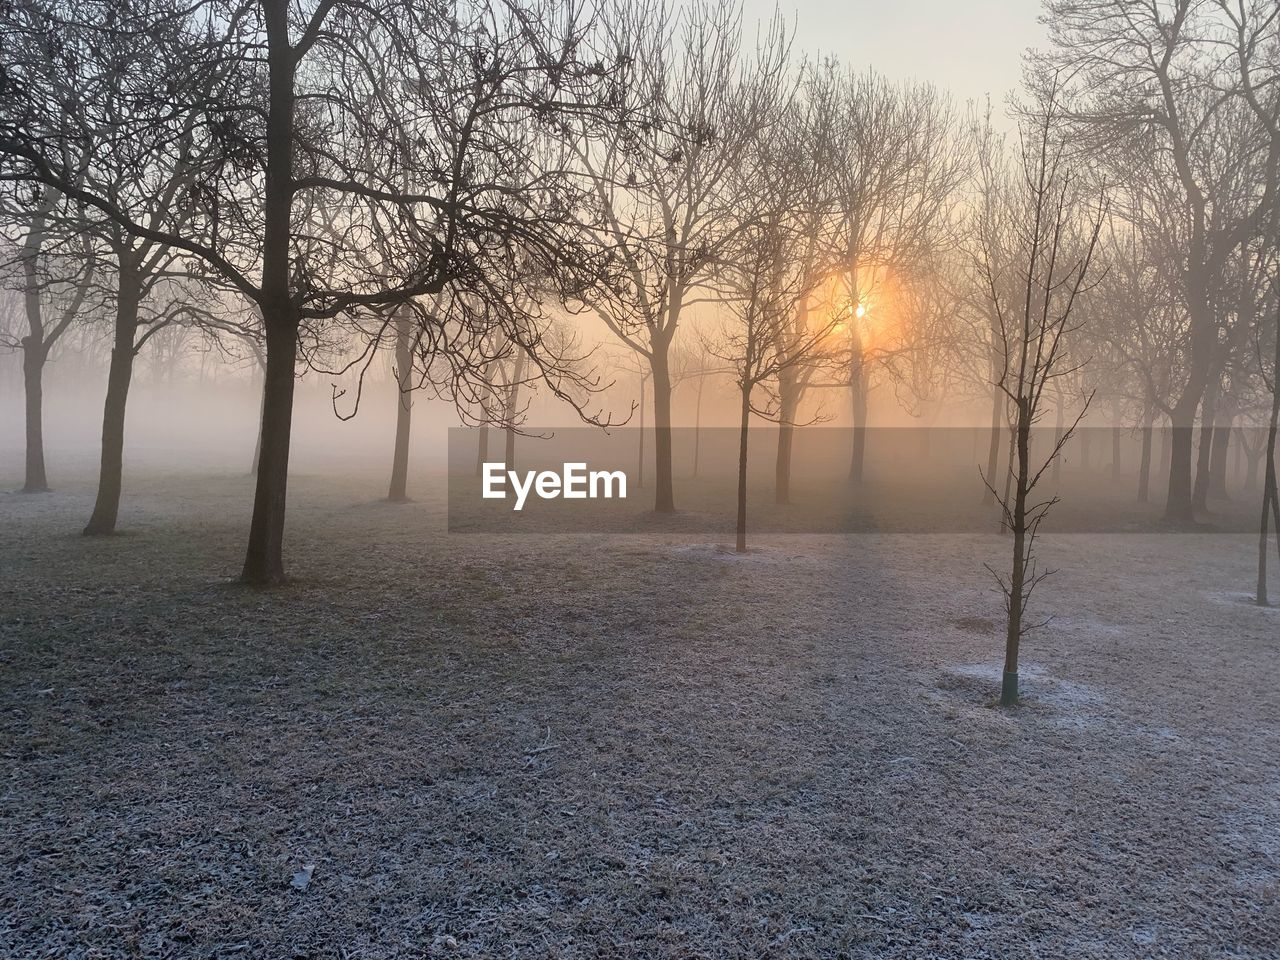 tree, fog, tranquility, plant, beauty in nature, tranquil scene, cold temperature, sky, scenics - nature, bare tree, winter, nature, landscape, sunset, no people, environment, land, non-urban scene, idyllic, sun, outdoors, hazy